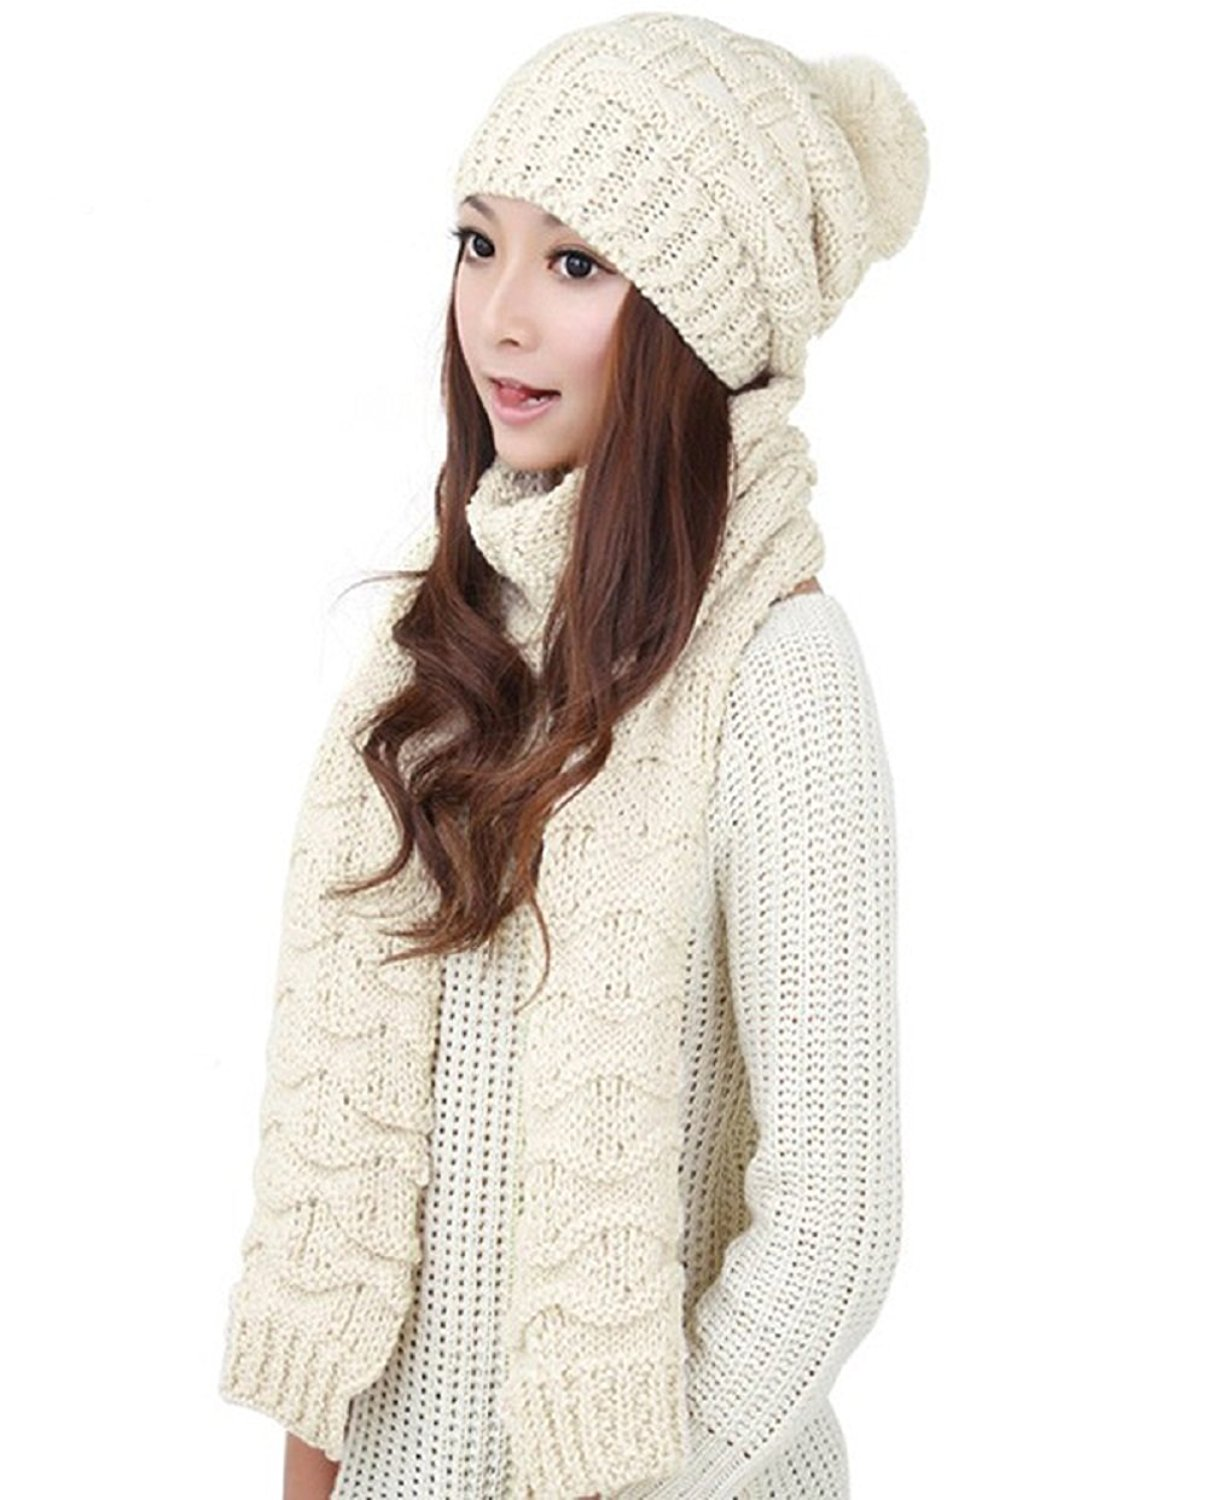 4a53709dc01 Get Quotations · TCCSTAR Women Girls Knitted Hat Scarf Set - Valentine s  Day Gifts Fashion Winter Warm Hat with